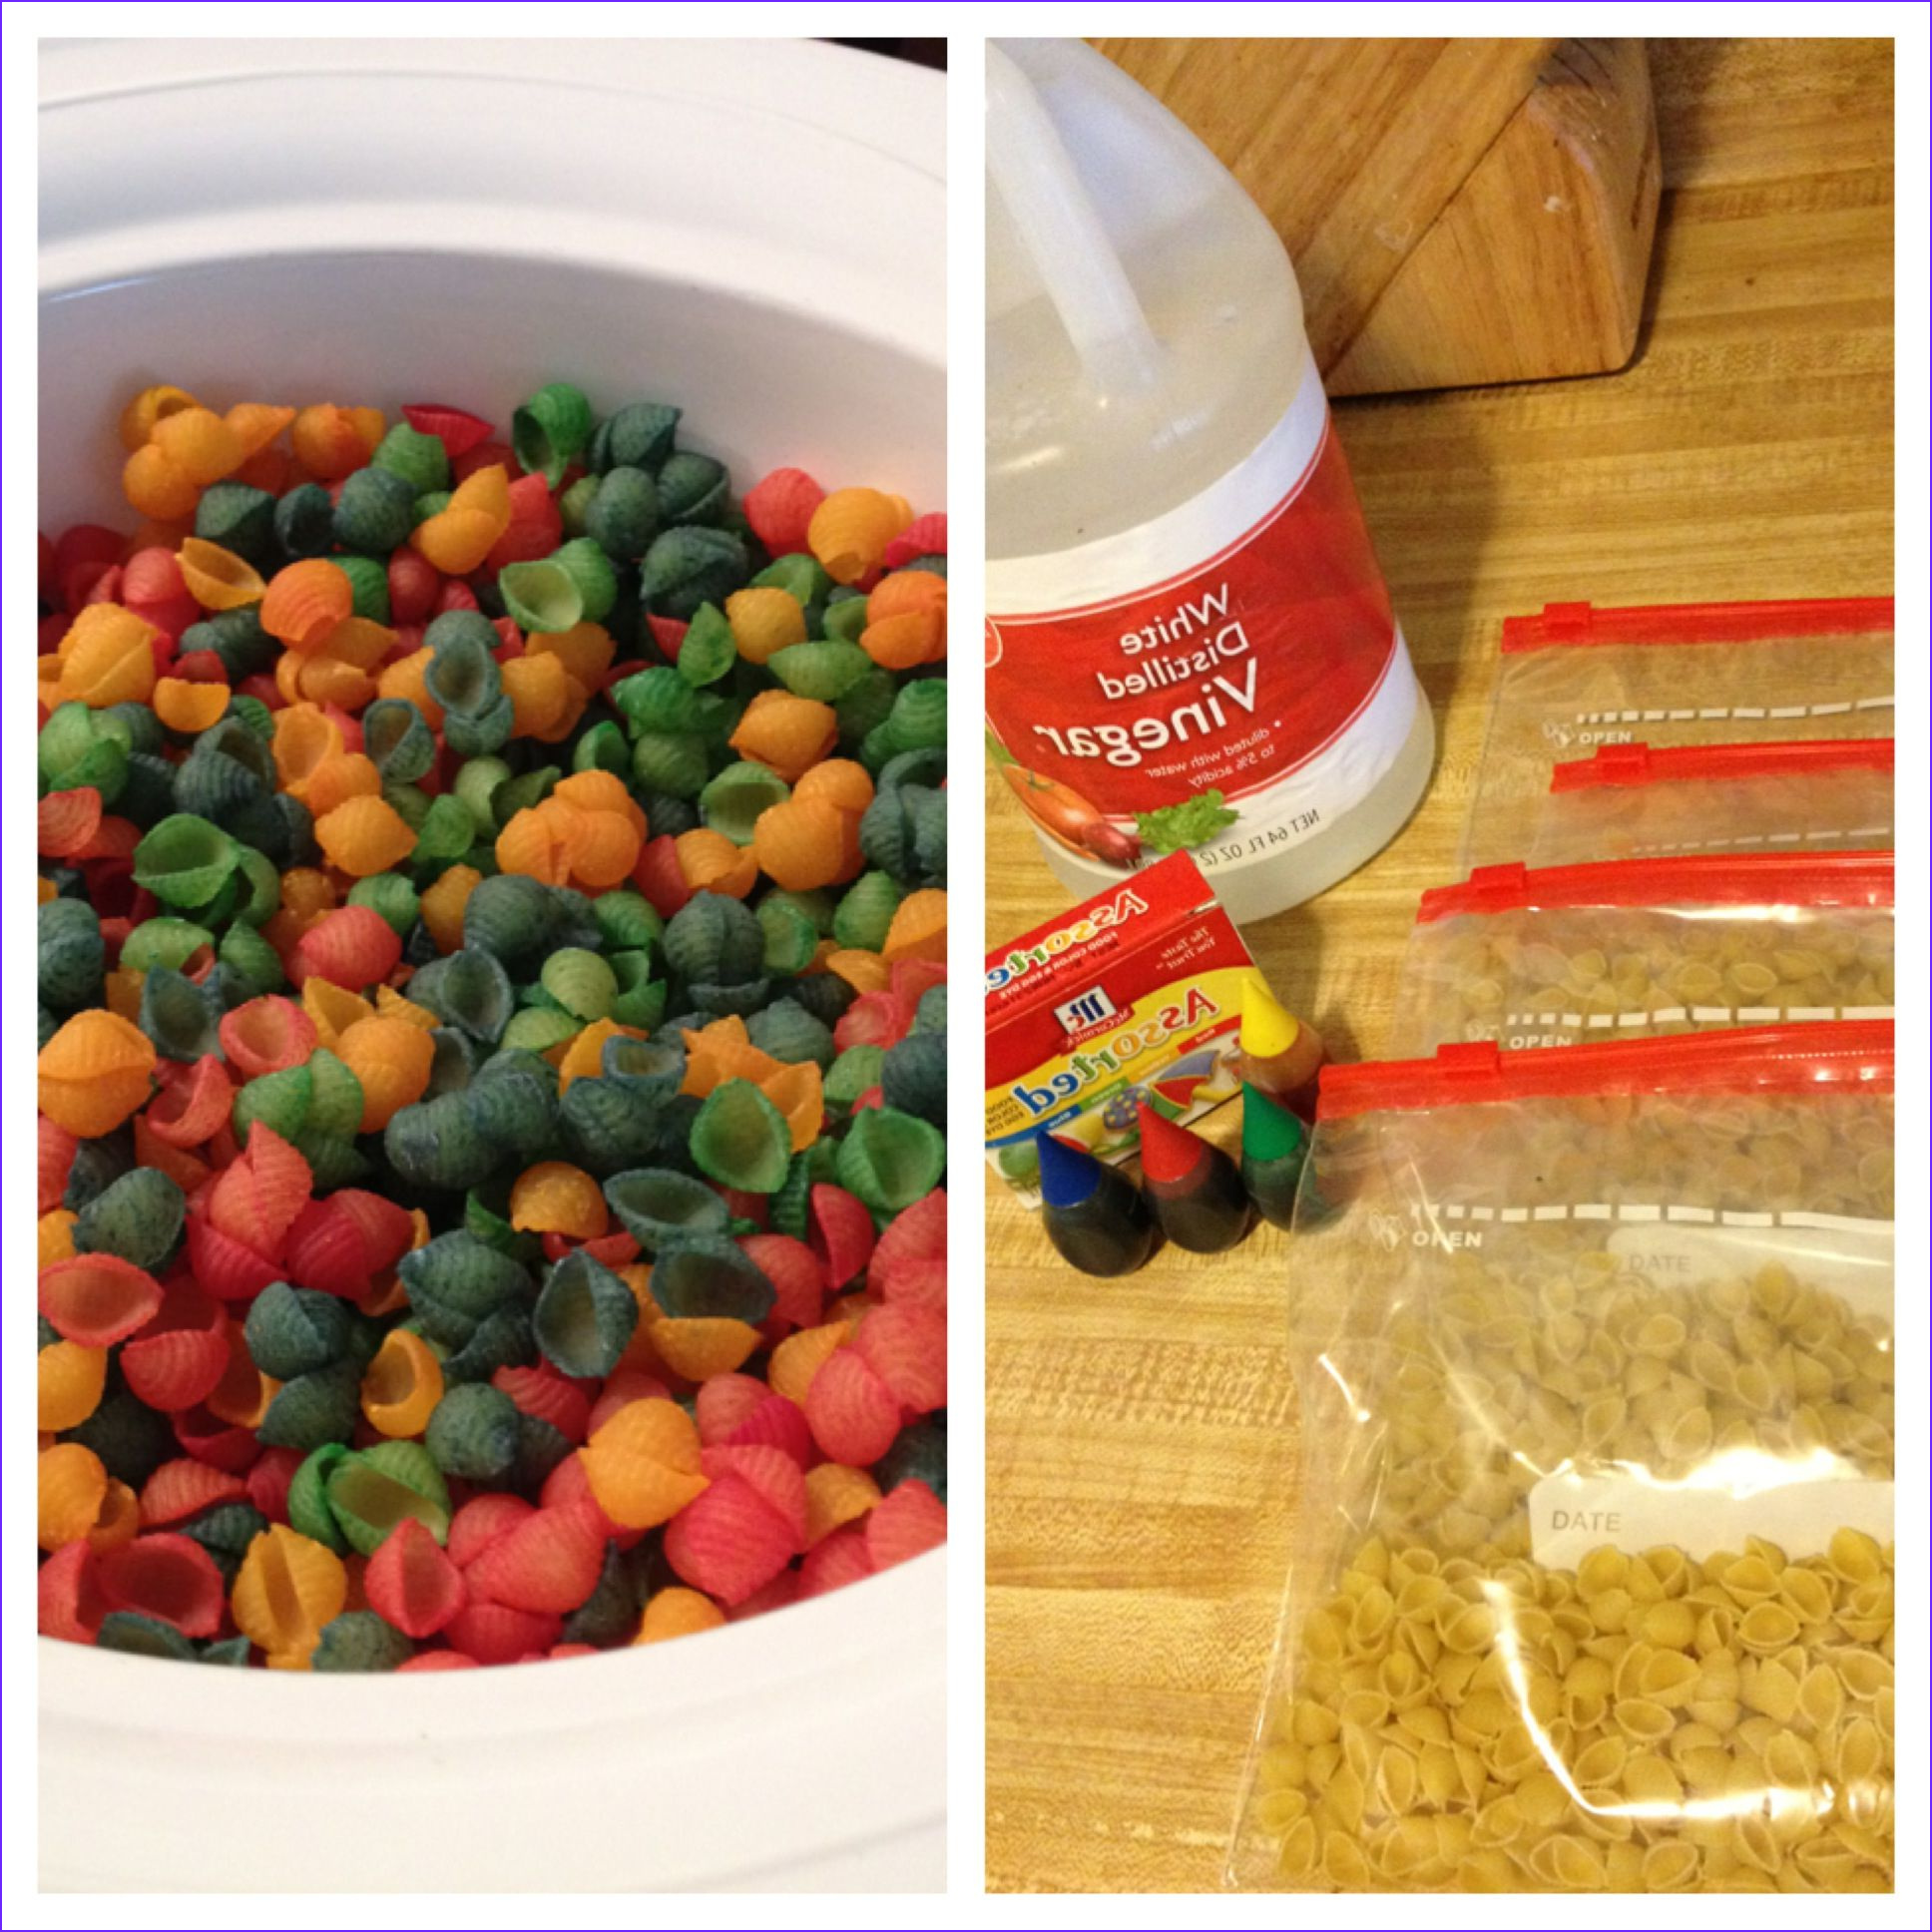 Dry Food Coloring Inspirational Gallery Colored Pasta 1t Of Vinegar and A Few Drops Of Food